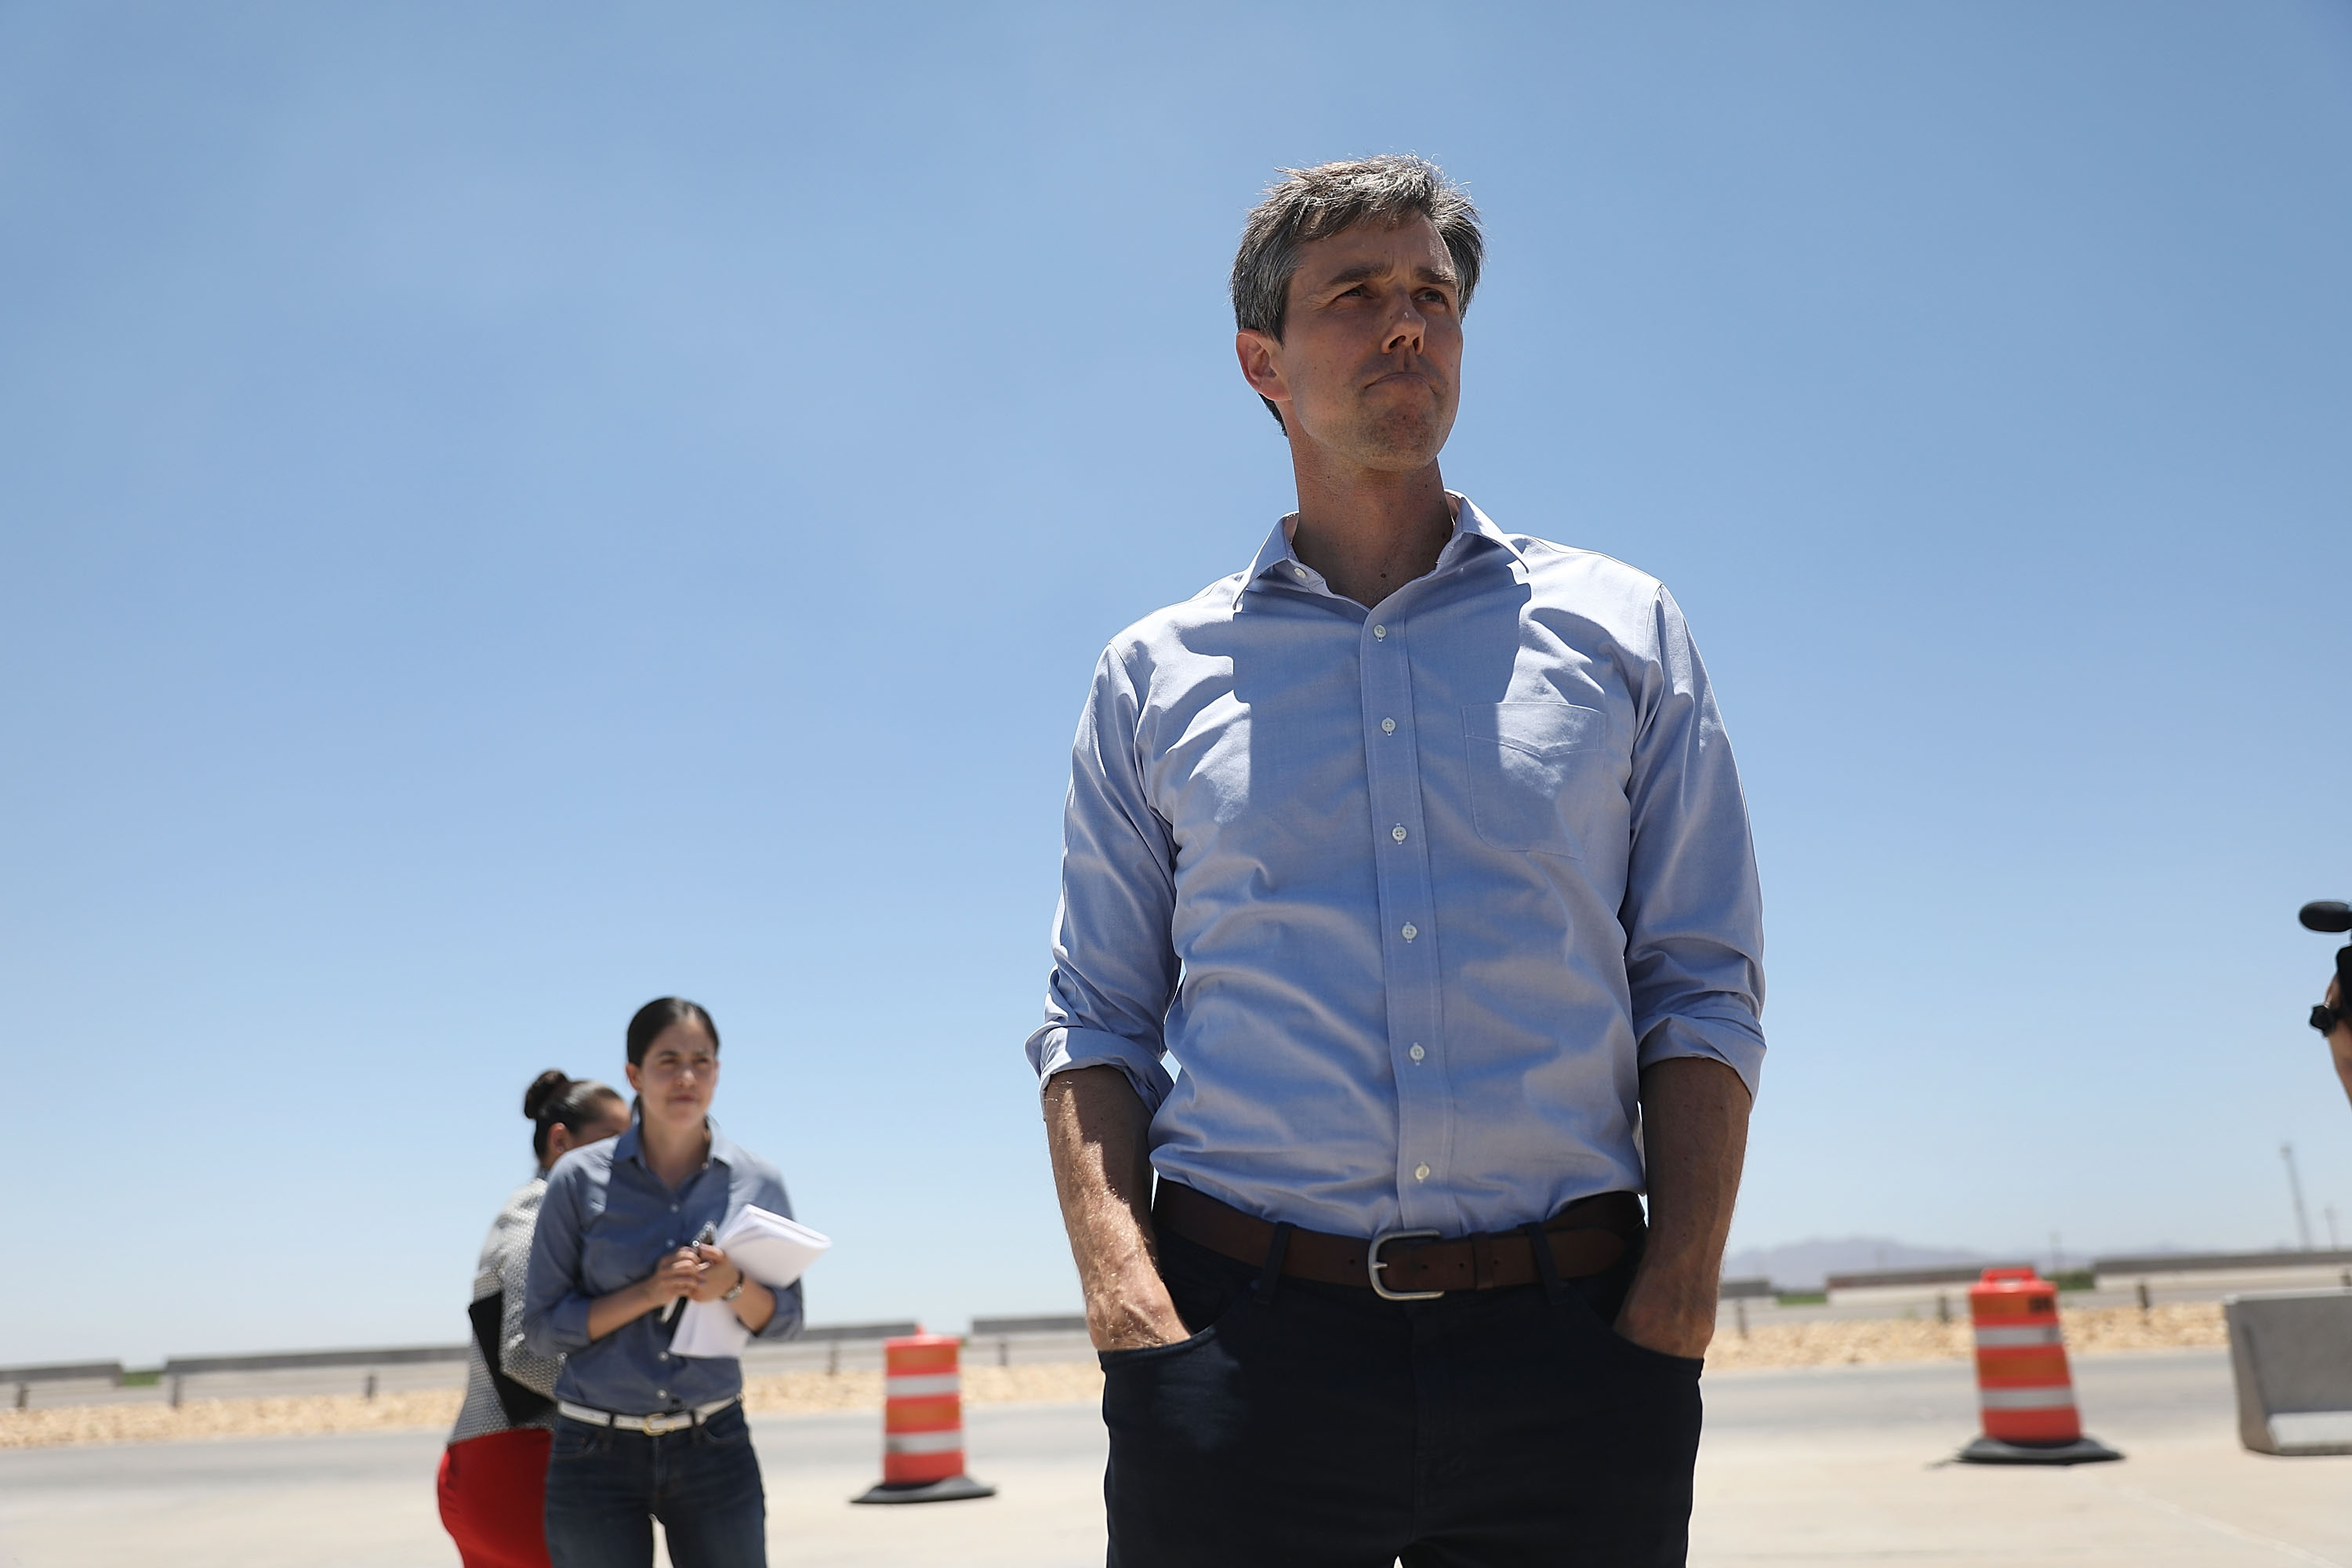 Rep. Beto O'Rourke (D-TX) arrives for a tour with other politicans of the tent encampment recently built near the Tornillo-Guadalupe Port of Entry on June 23, 2018 in Tornillo, Texas. (Getty Images)